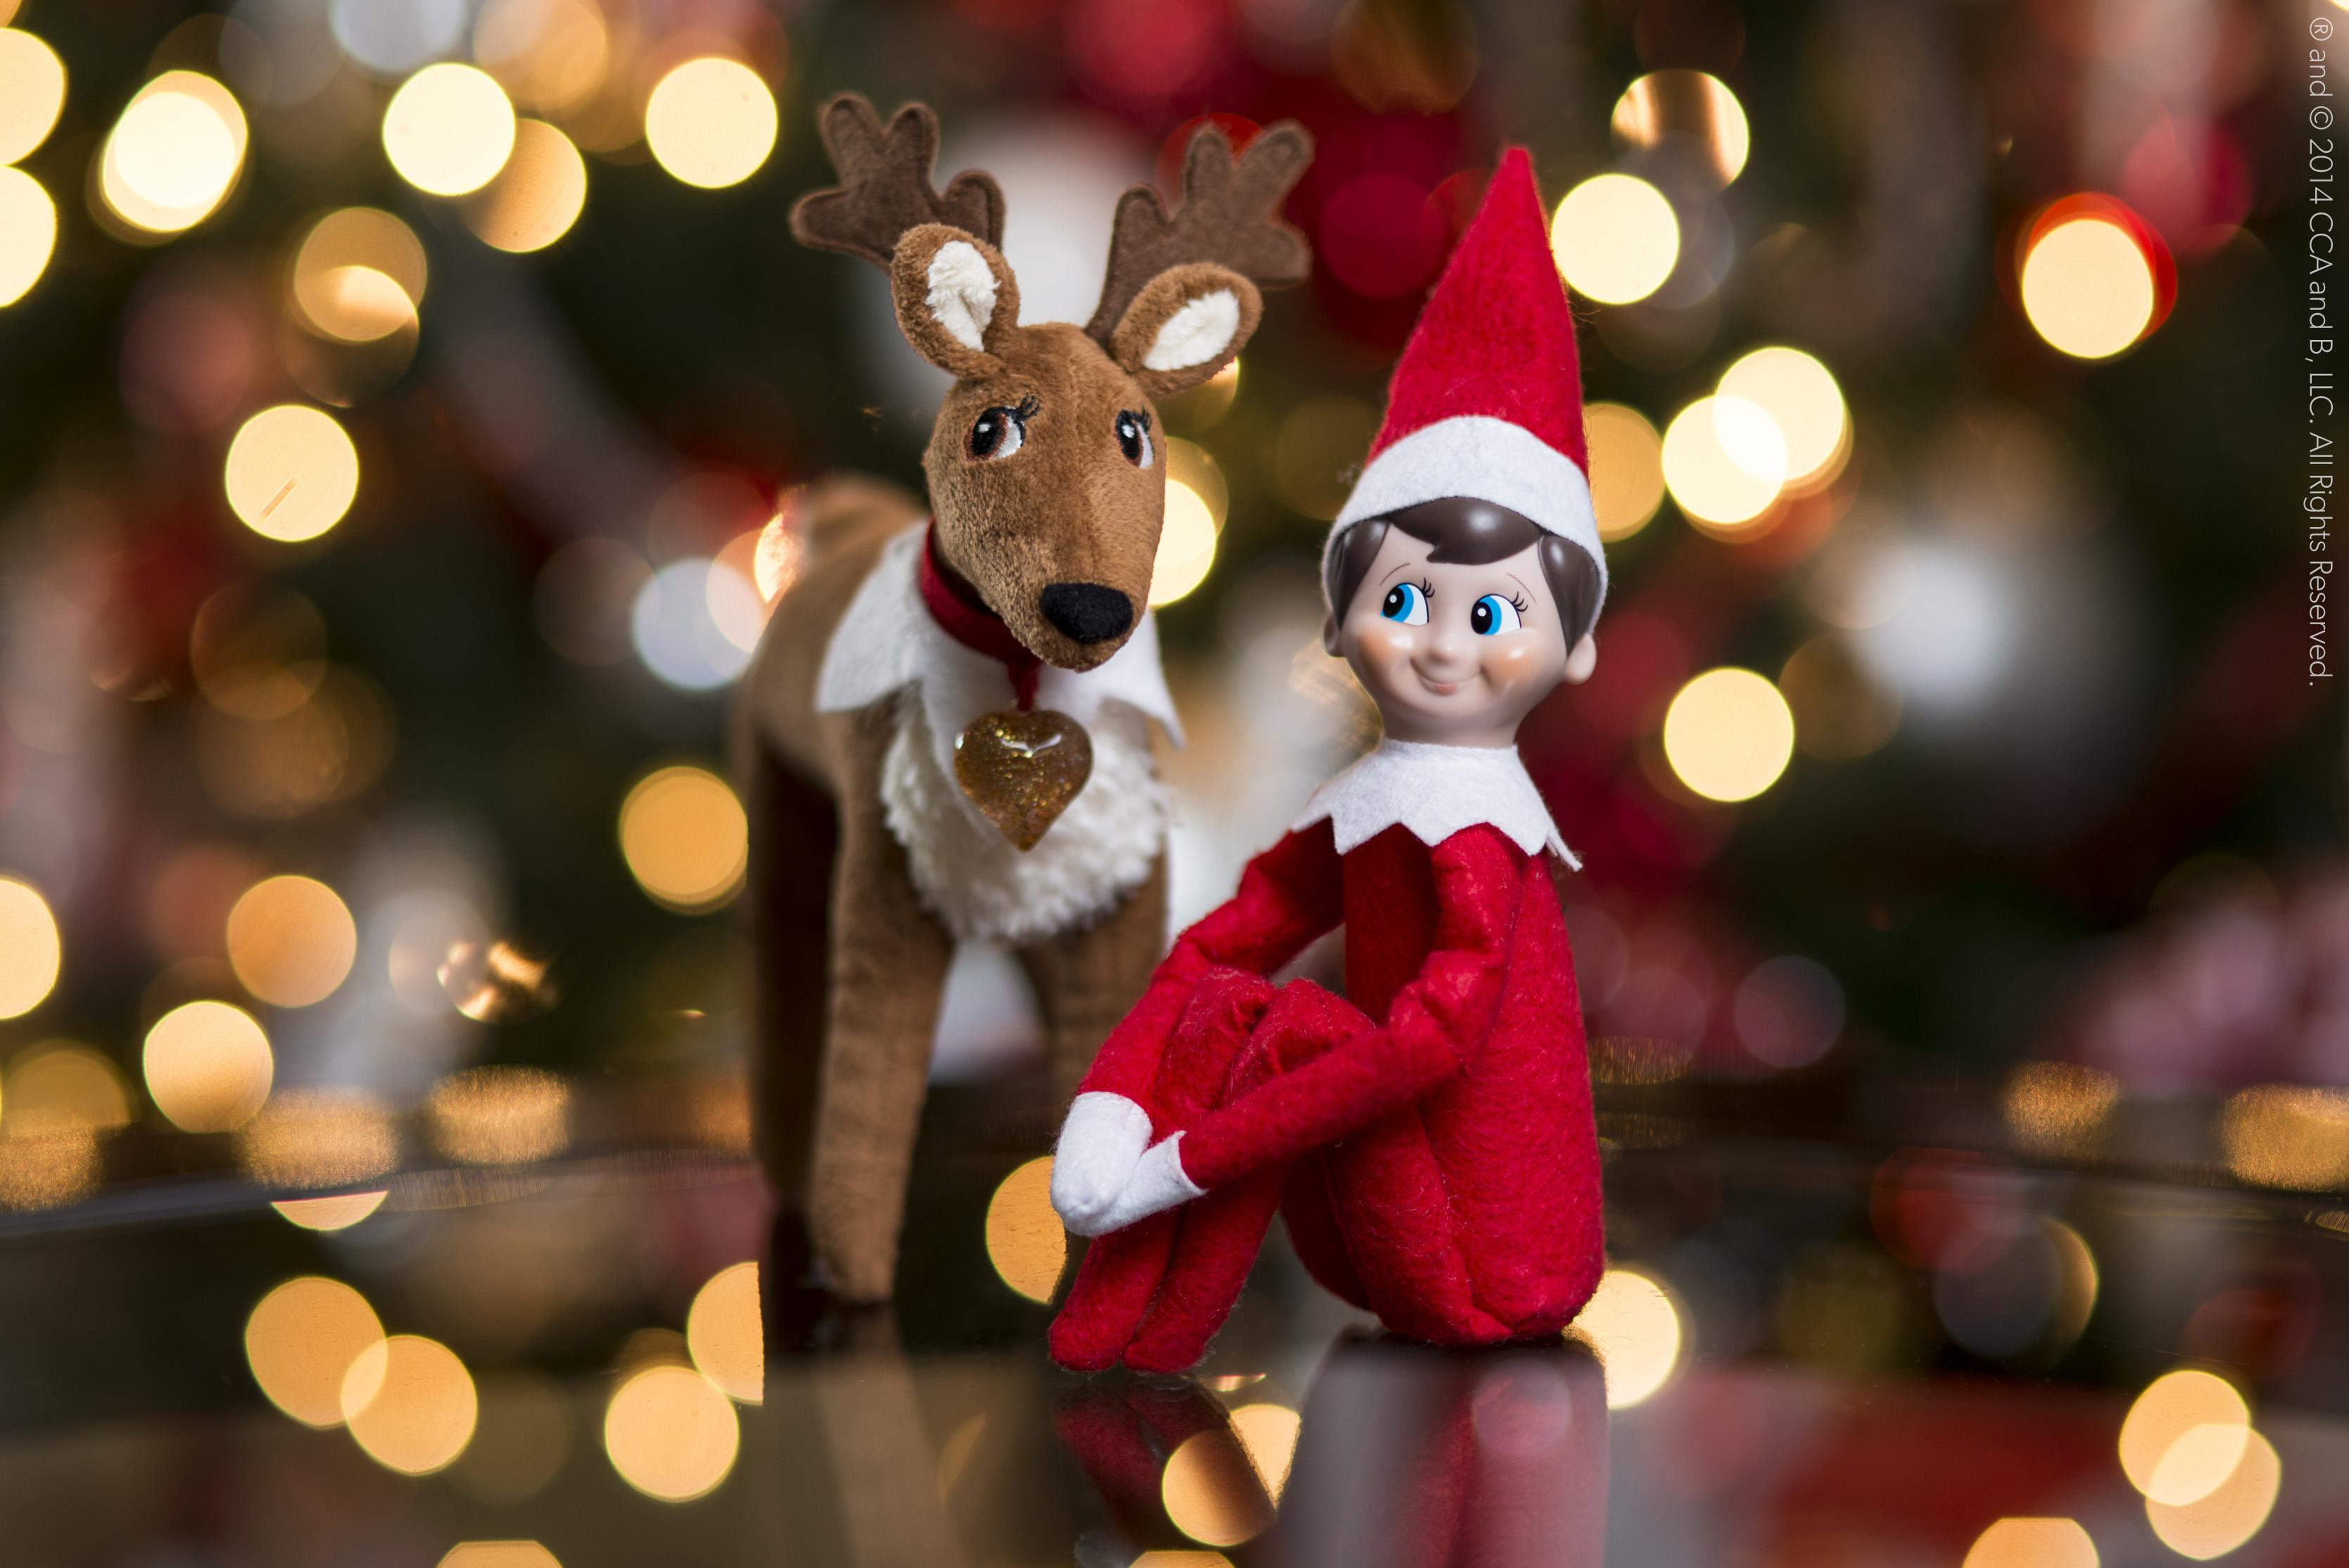 12 Fun facts about Elf on the Shelf you never knew before – SheKnows